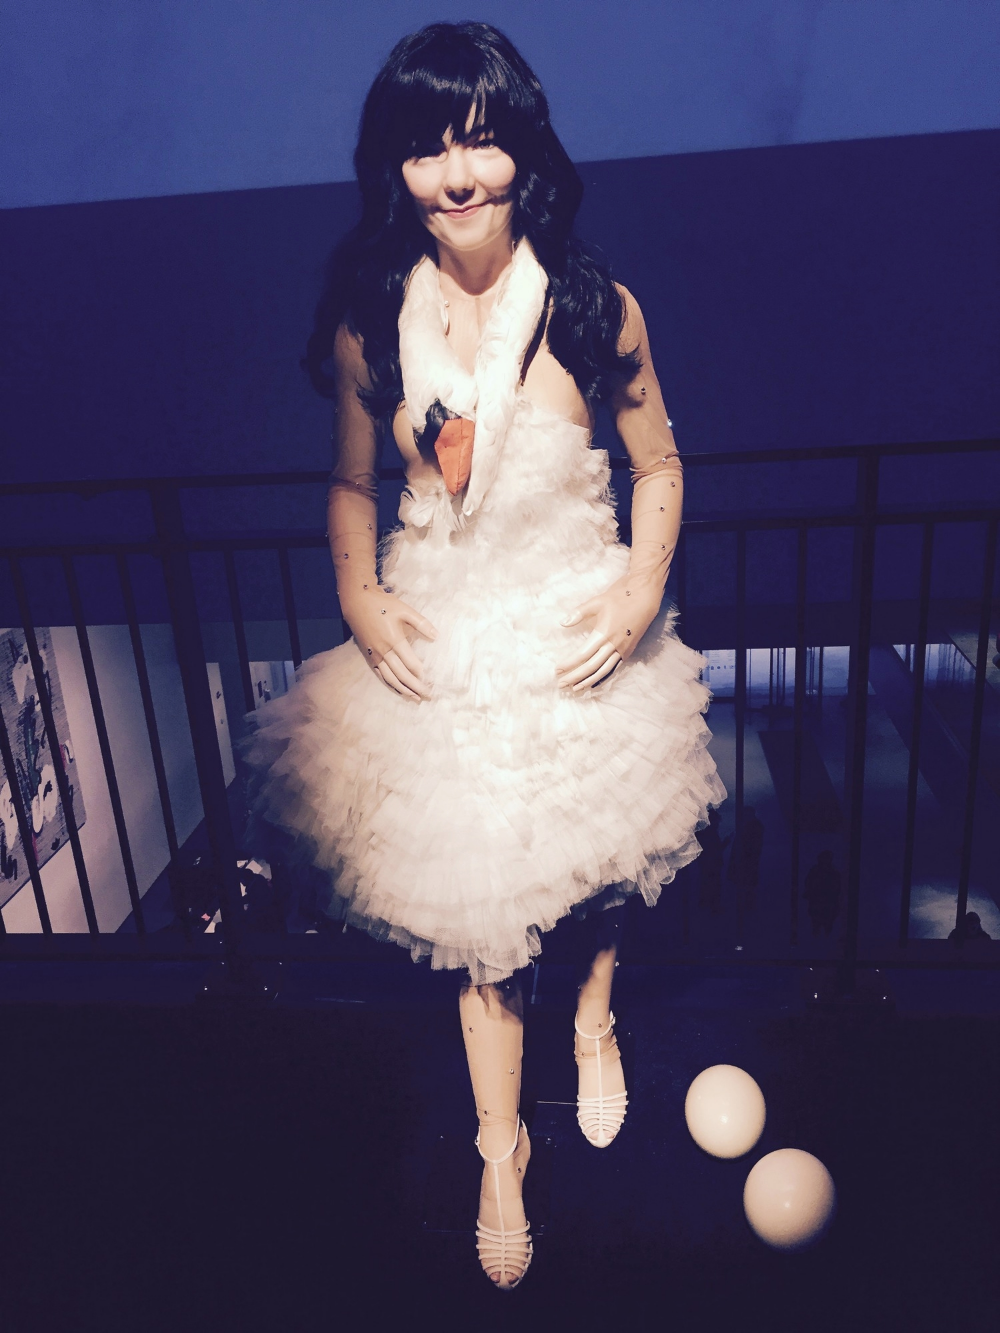 Björk's iconic swan dress she wore to the 2001 Academy Awards.